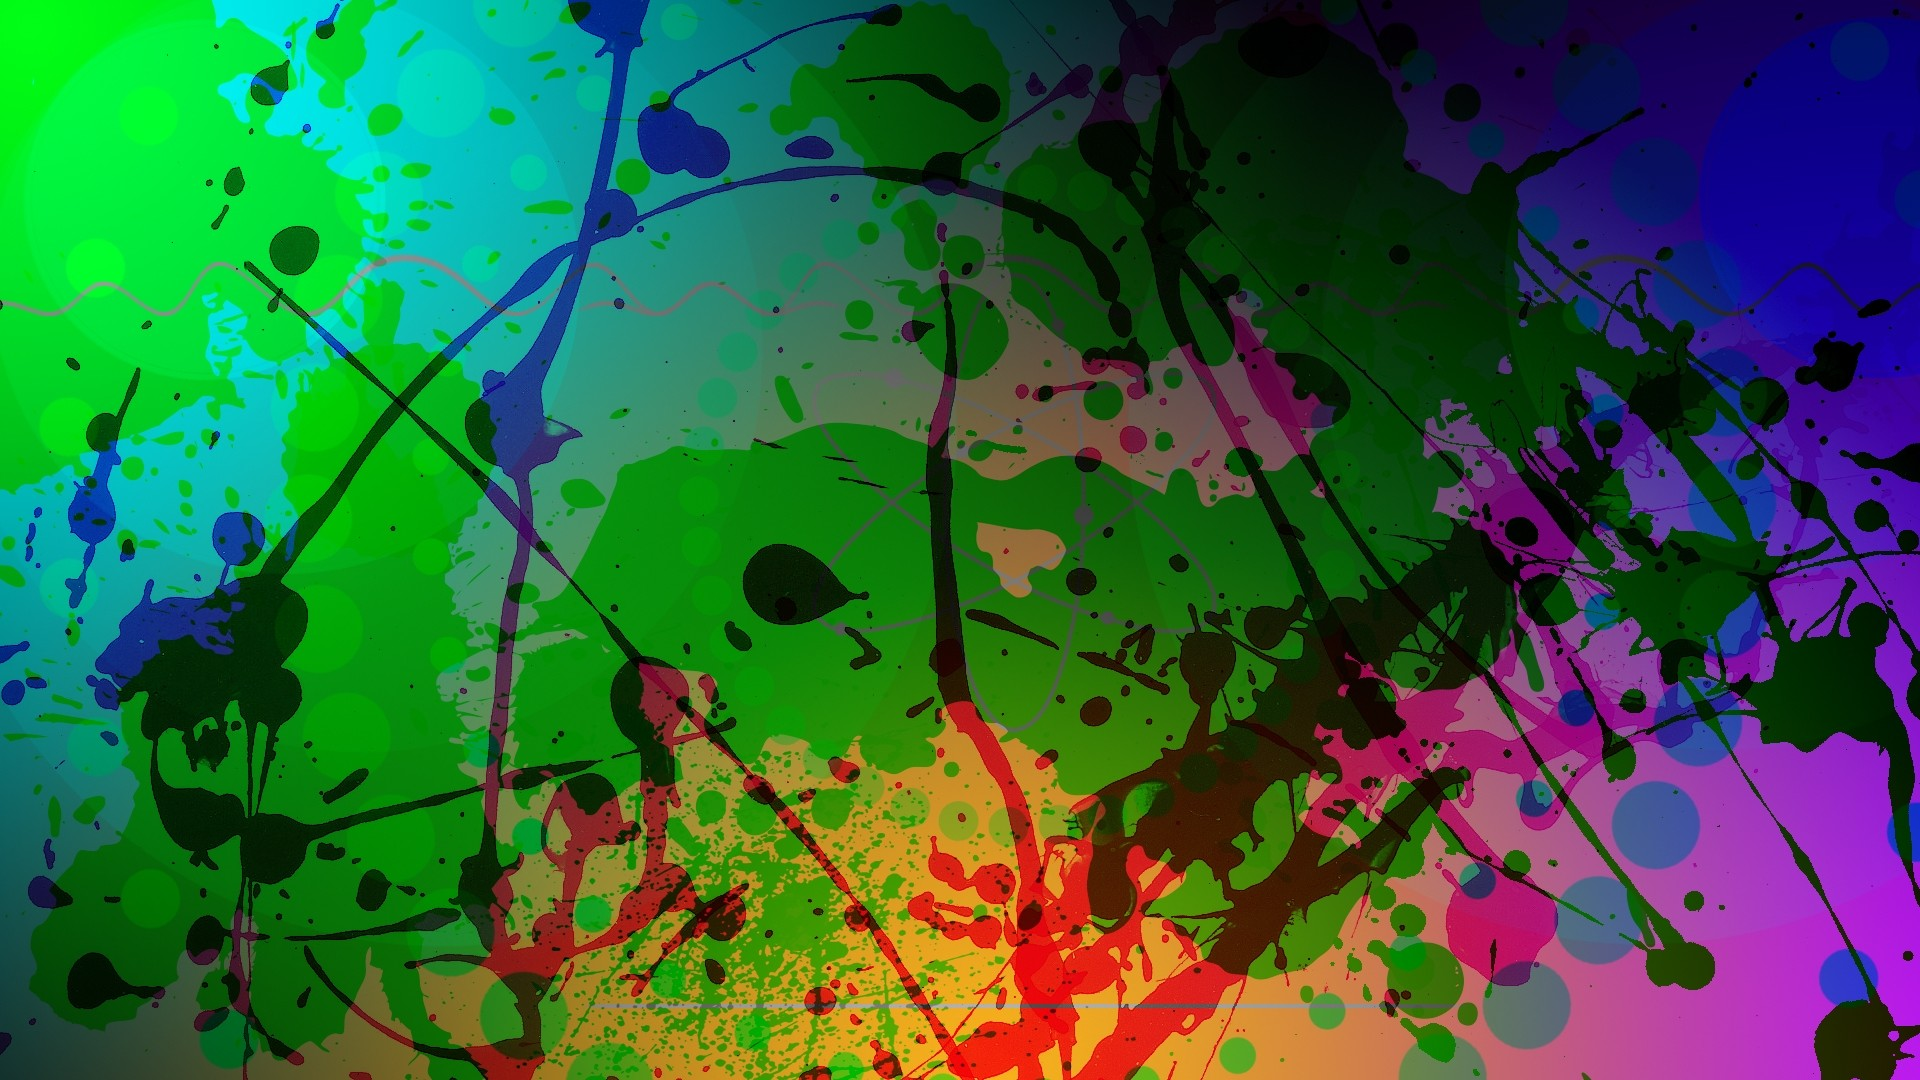 Wallpaper abstract, colorful, blur